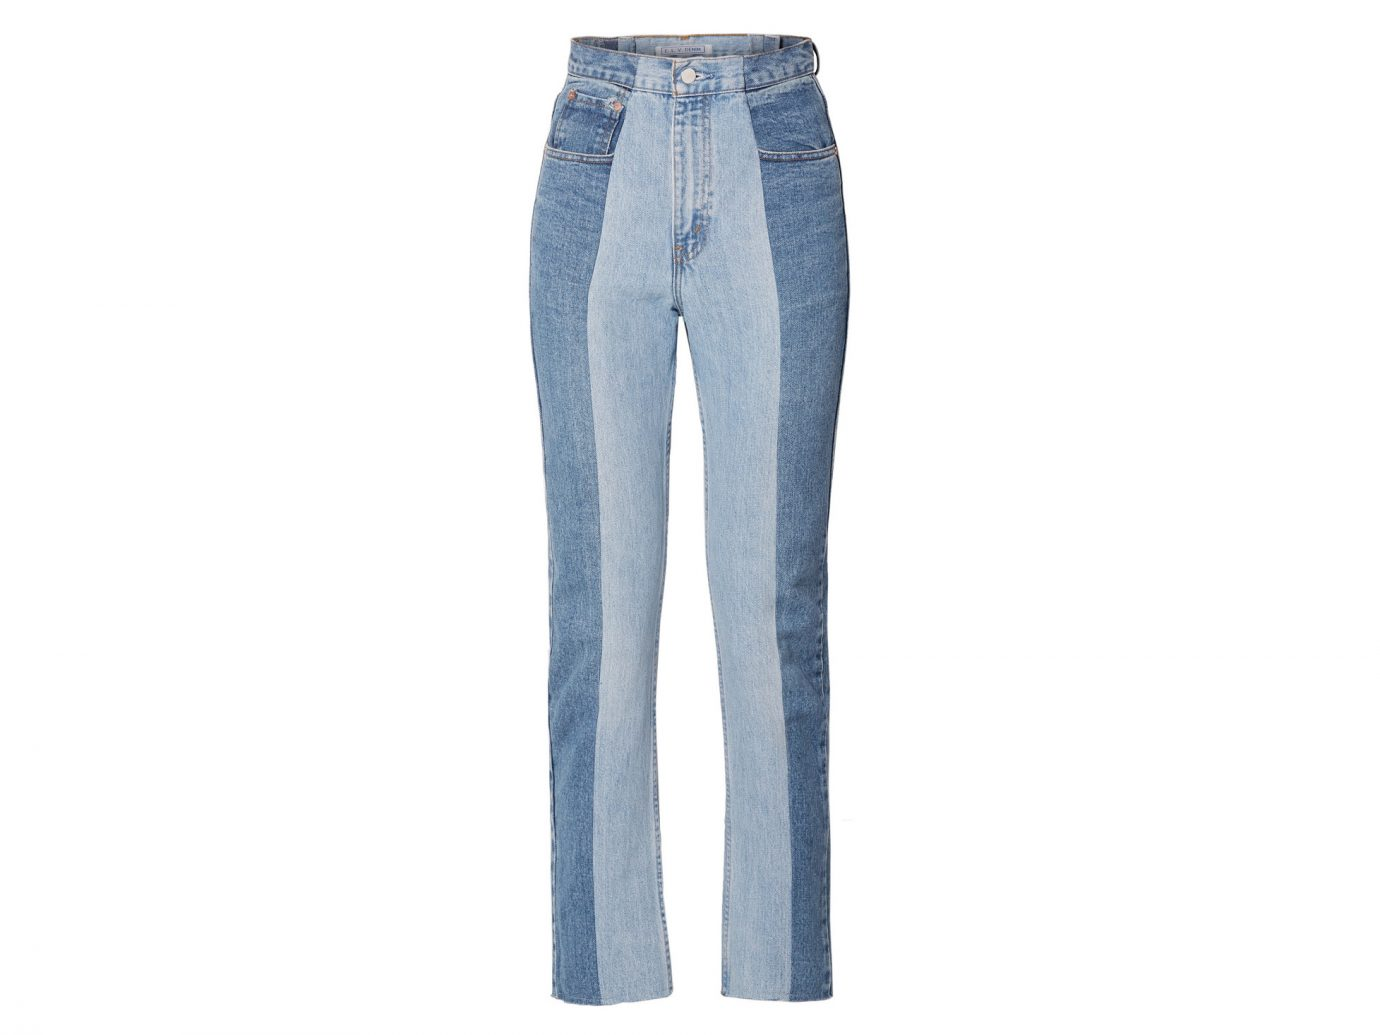 E.L.V. DENIM The Twin two-tone high-rise straight-leg